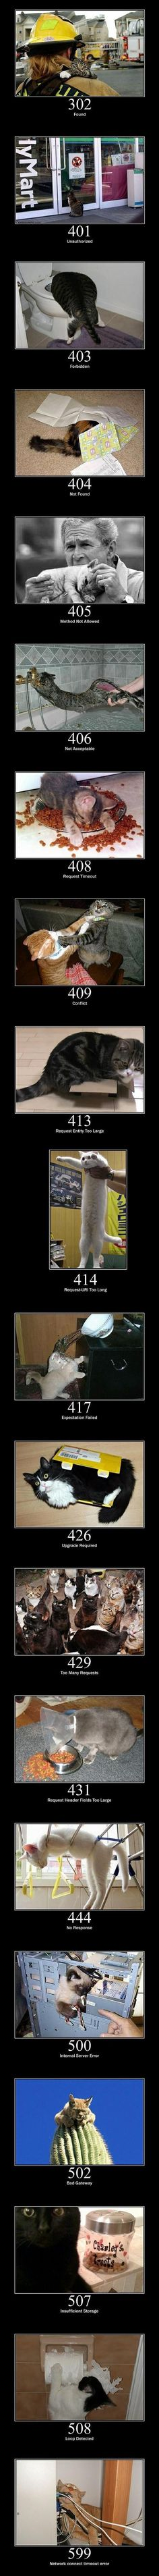 20  HTTP ERRORs with Cats As Error Messages - HAHA